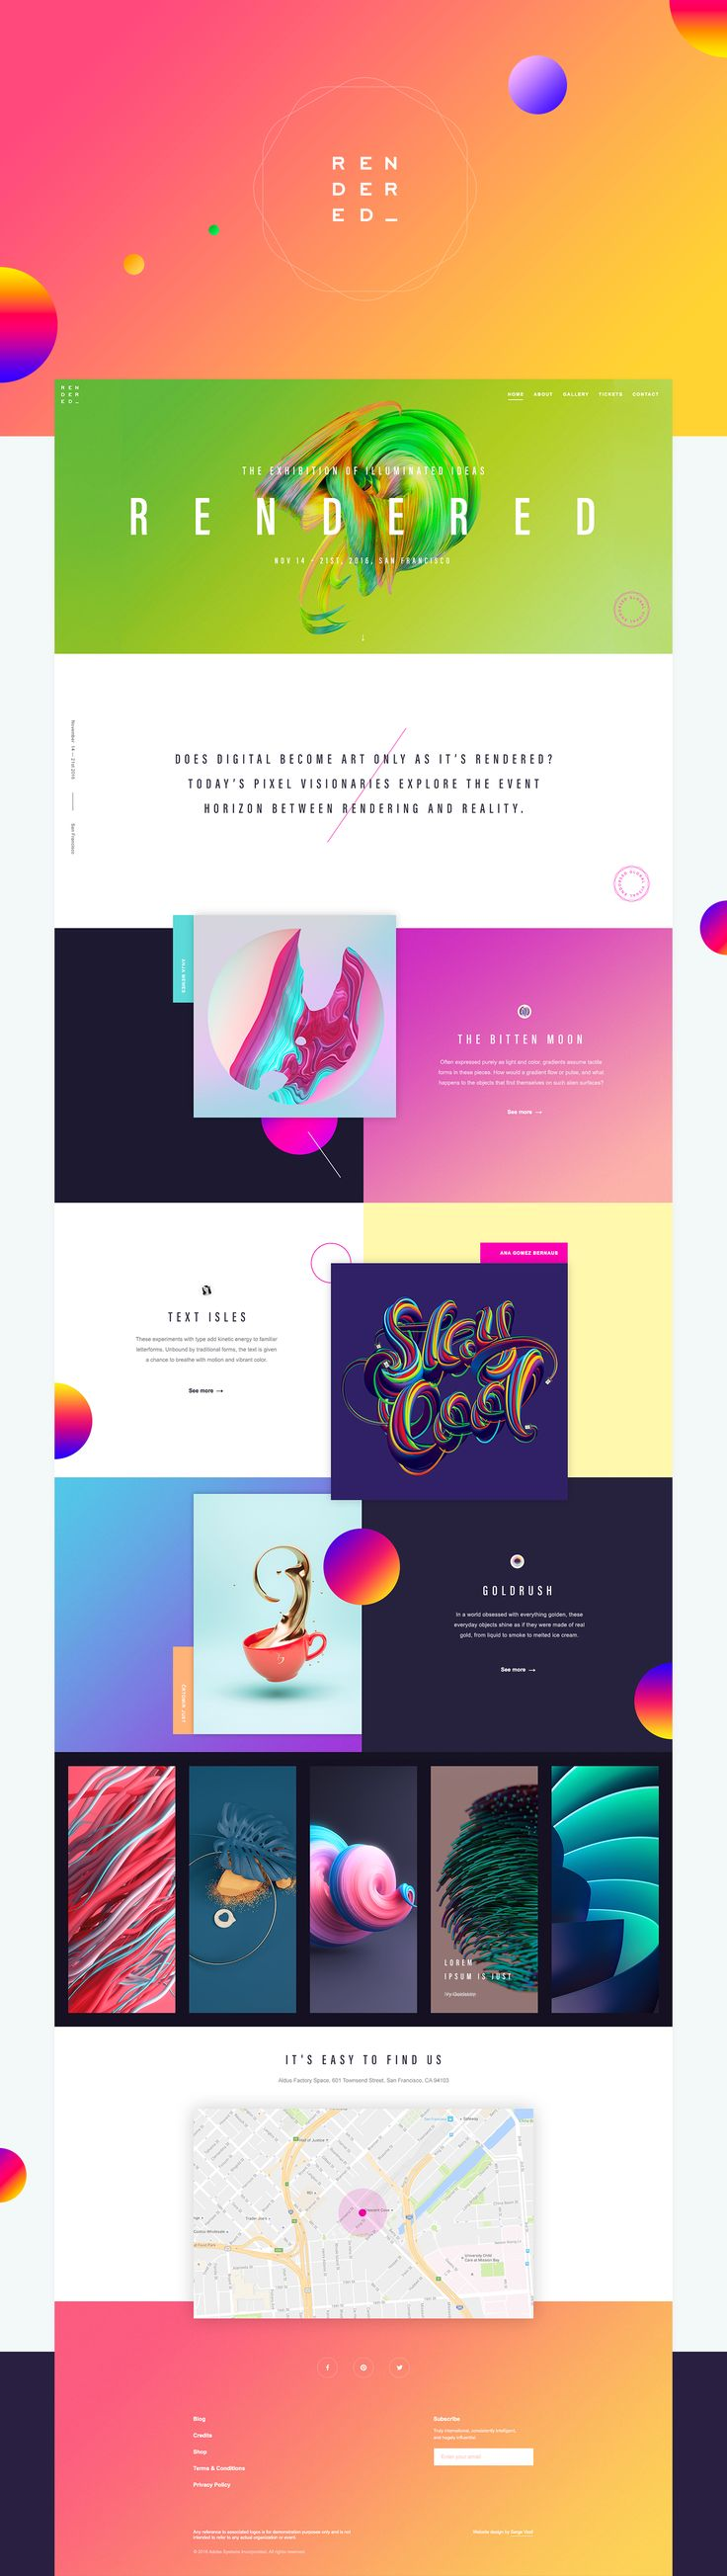 25 interfaces fraches pour votre inspiration ui designcreative web - Web Page Design Ideas